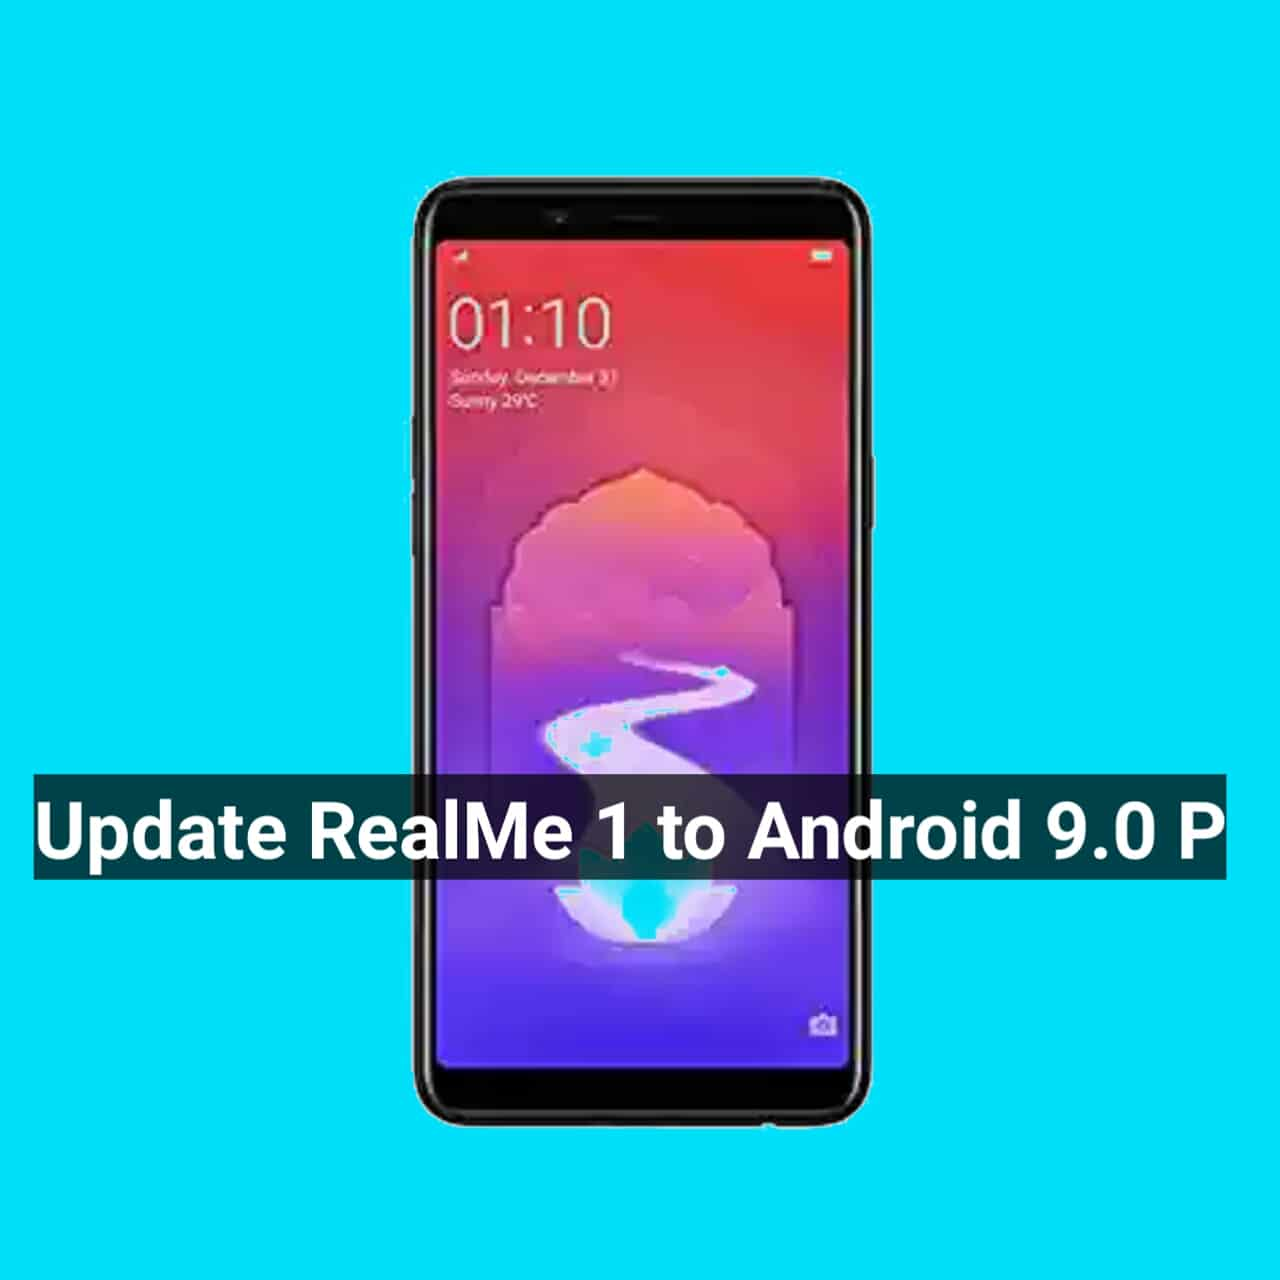 Update Realme 1 to Android 9 P